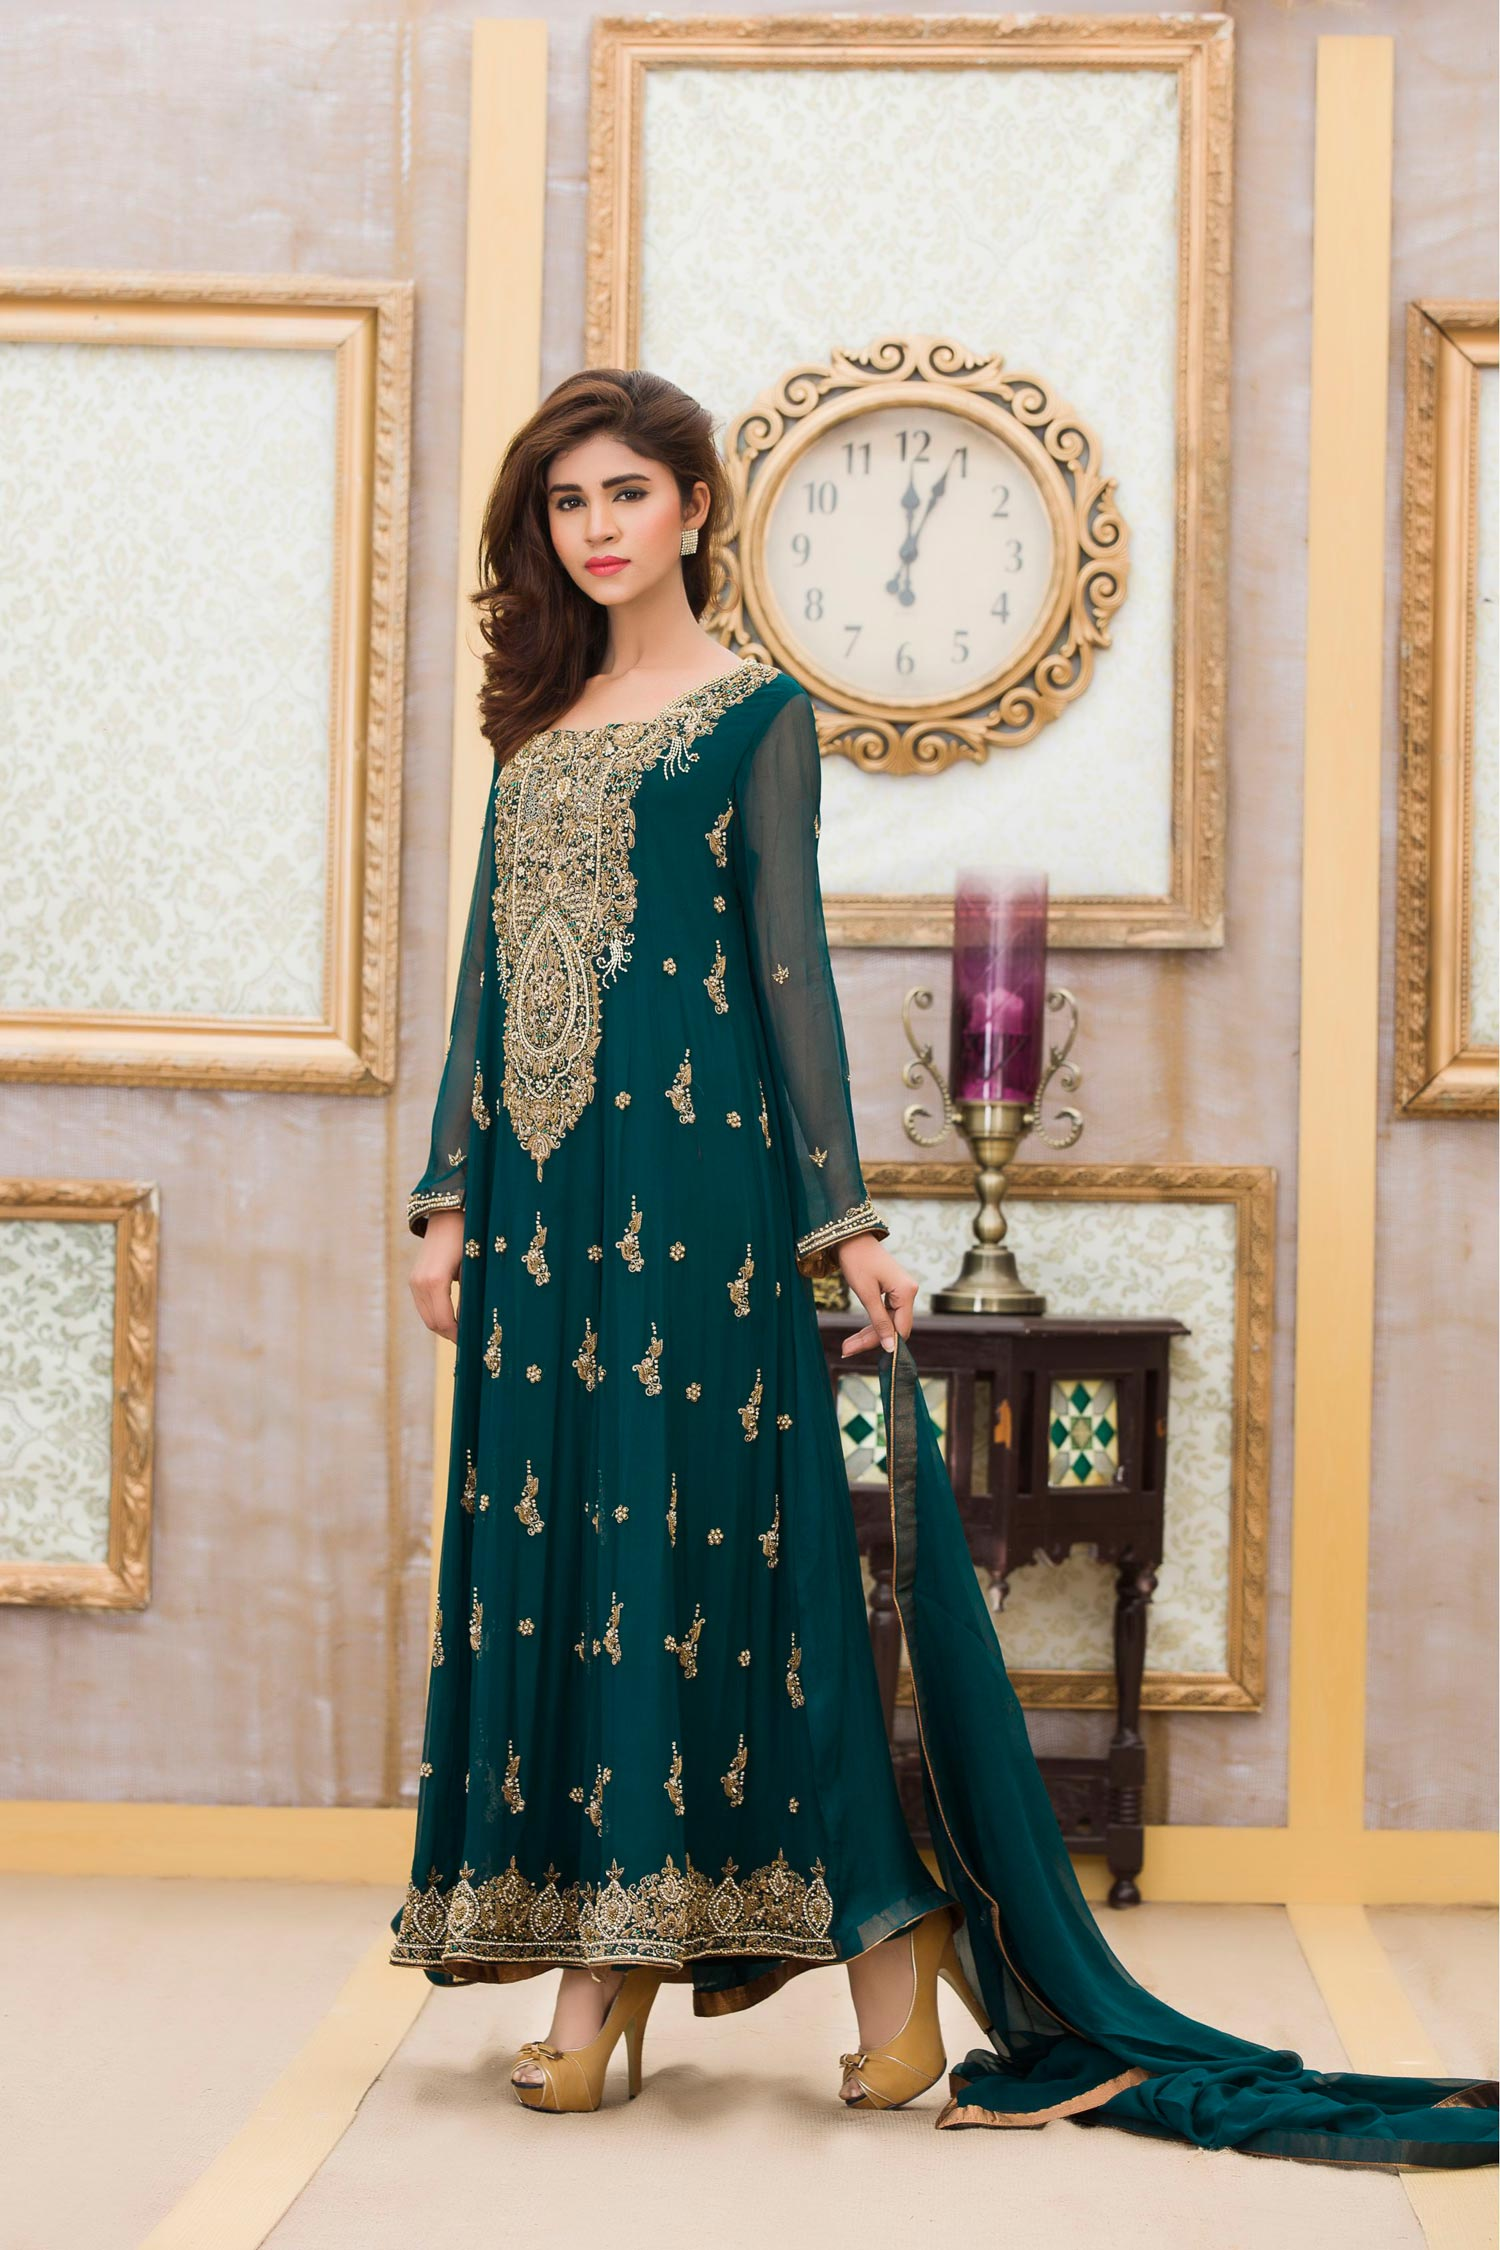 BOTTLE GREEN Bridal Dress BY Exclusive Boutique - Exclusive Online ...